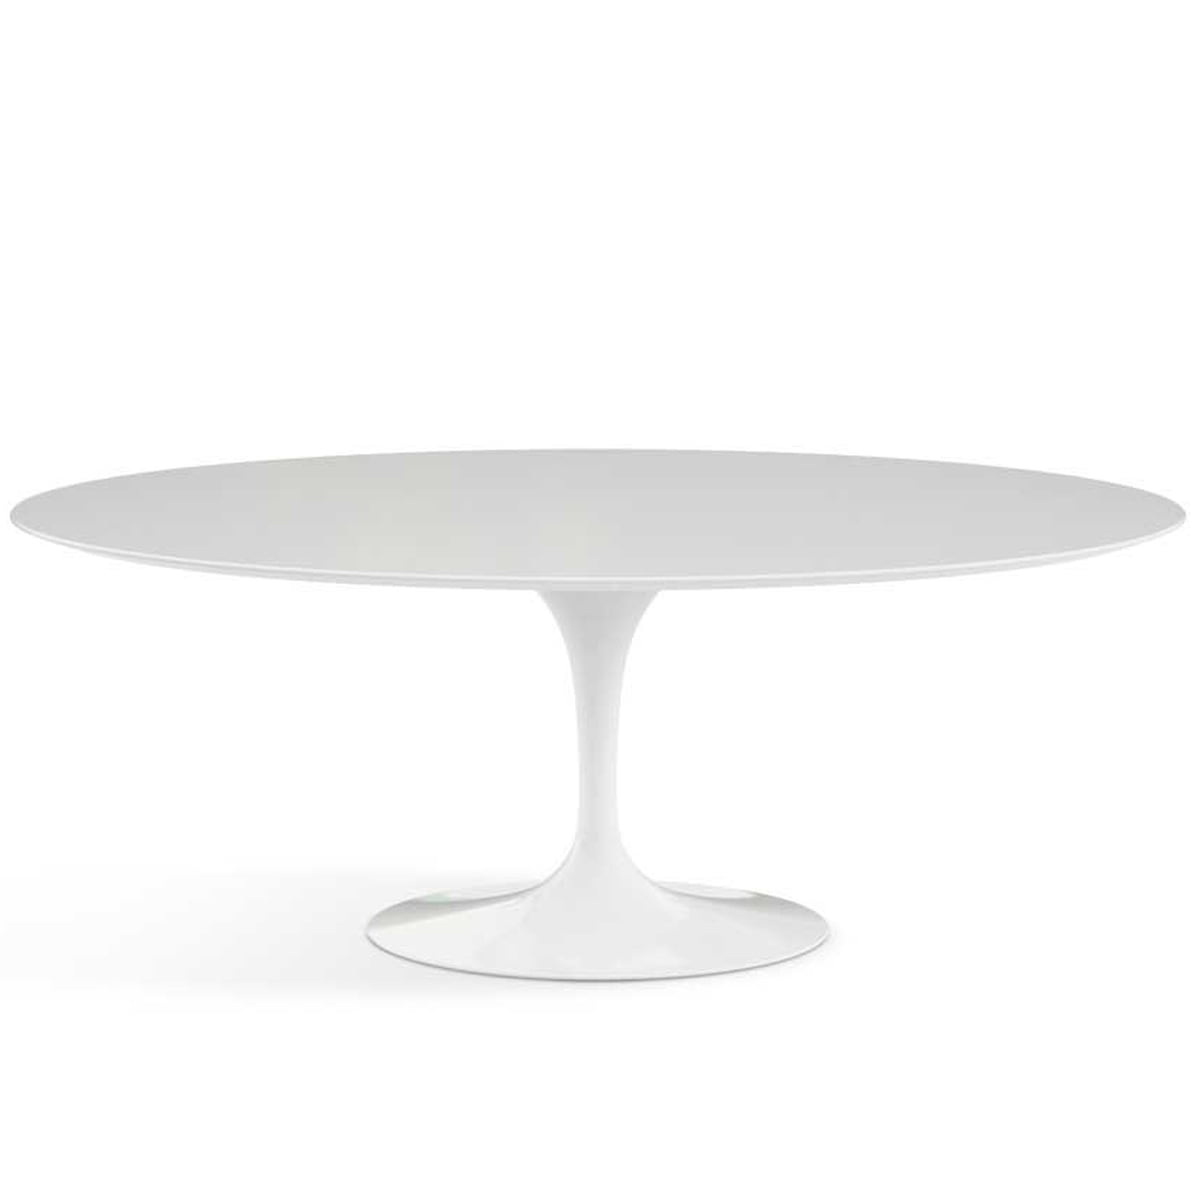 the saarinen tulip dining table from knoll. Black Bedroom Furniture Sets. Home Design Ideas